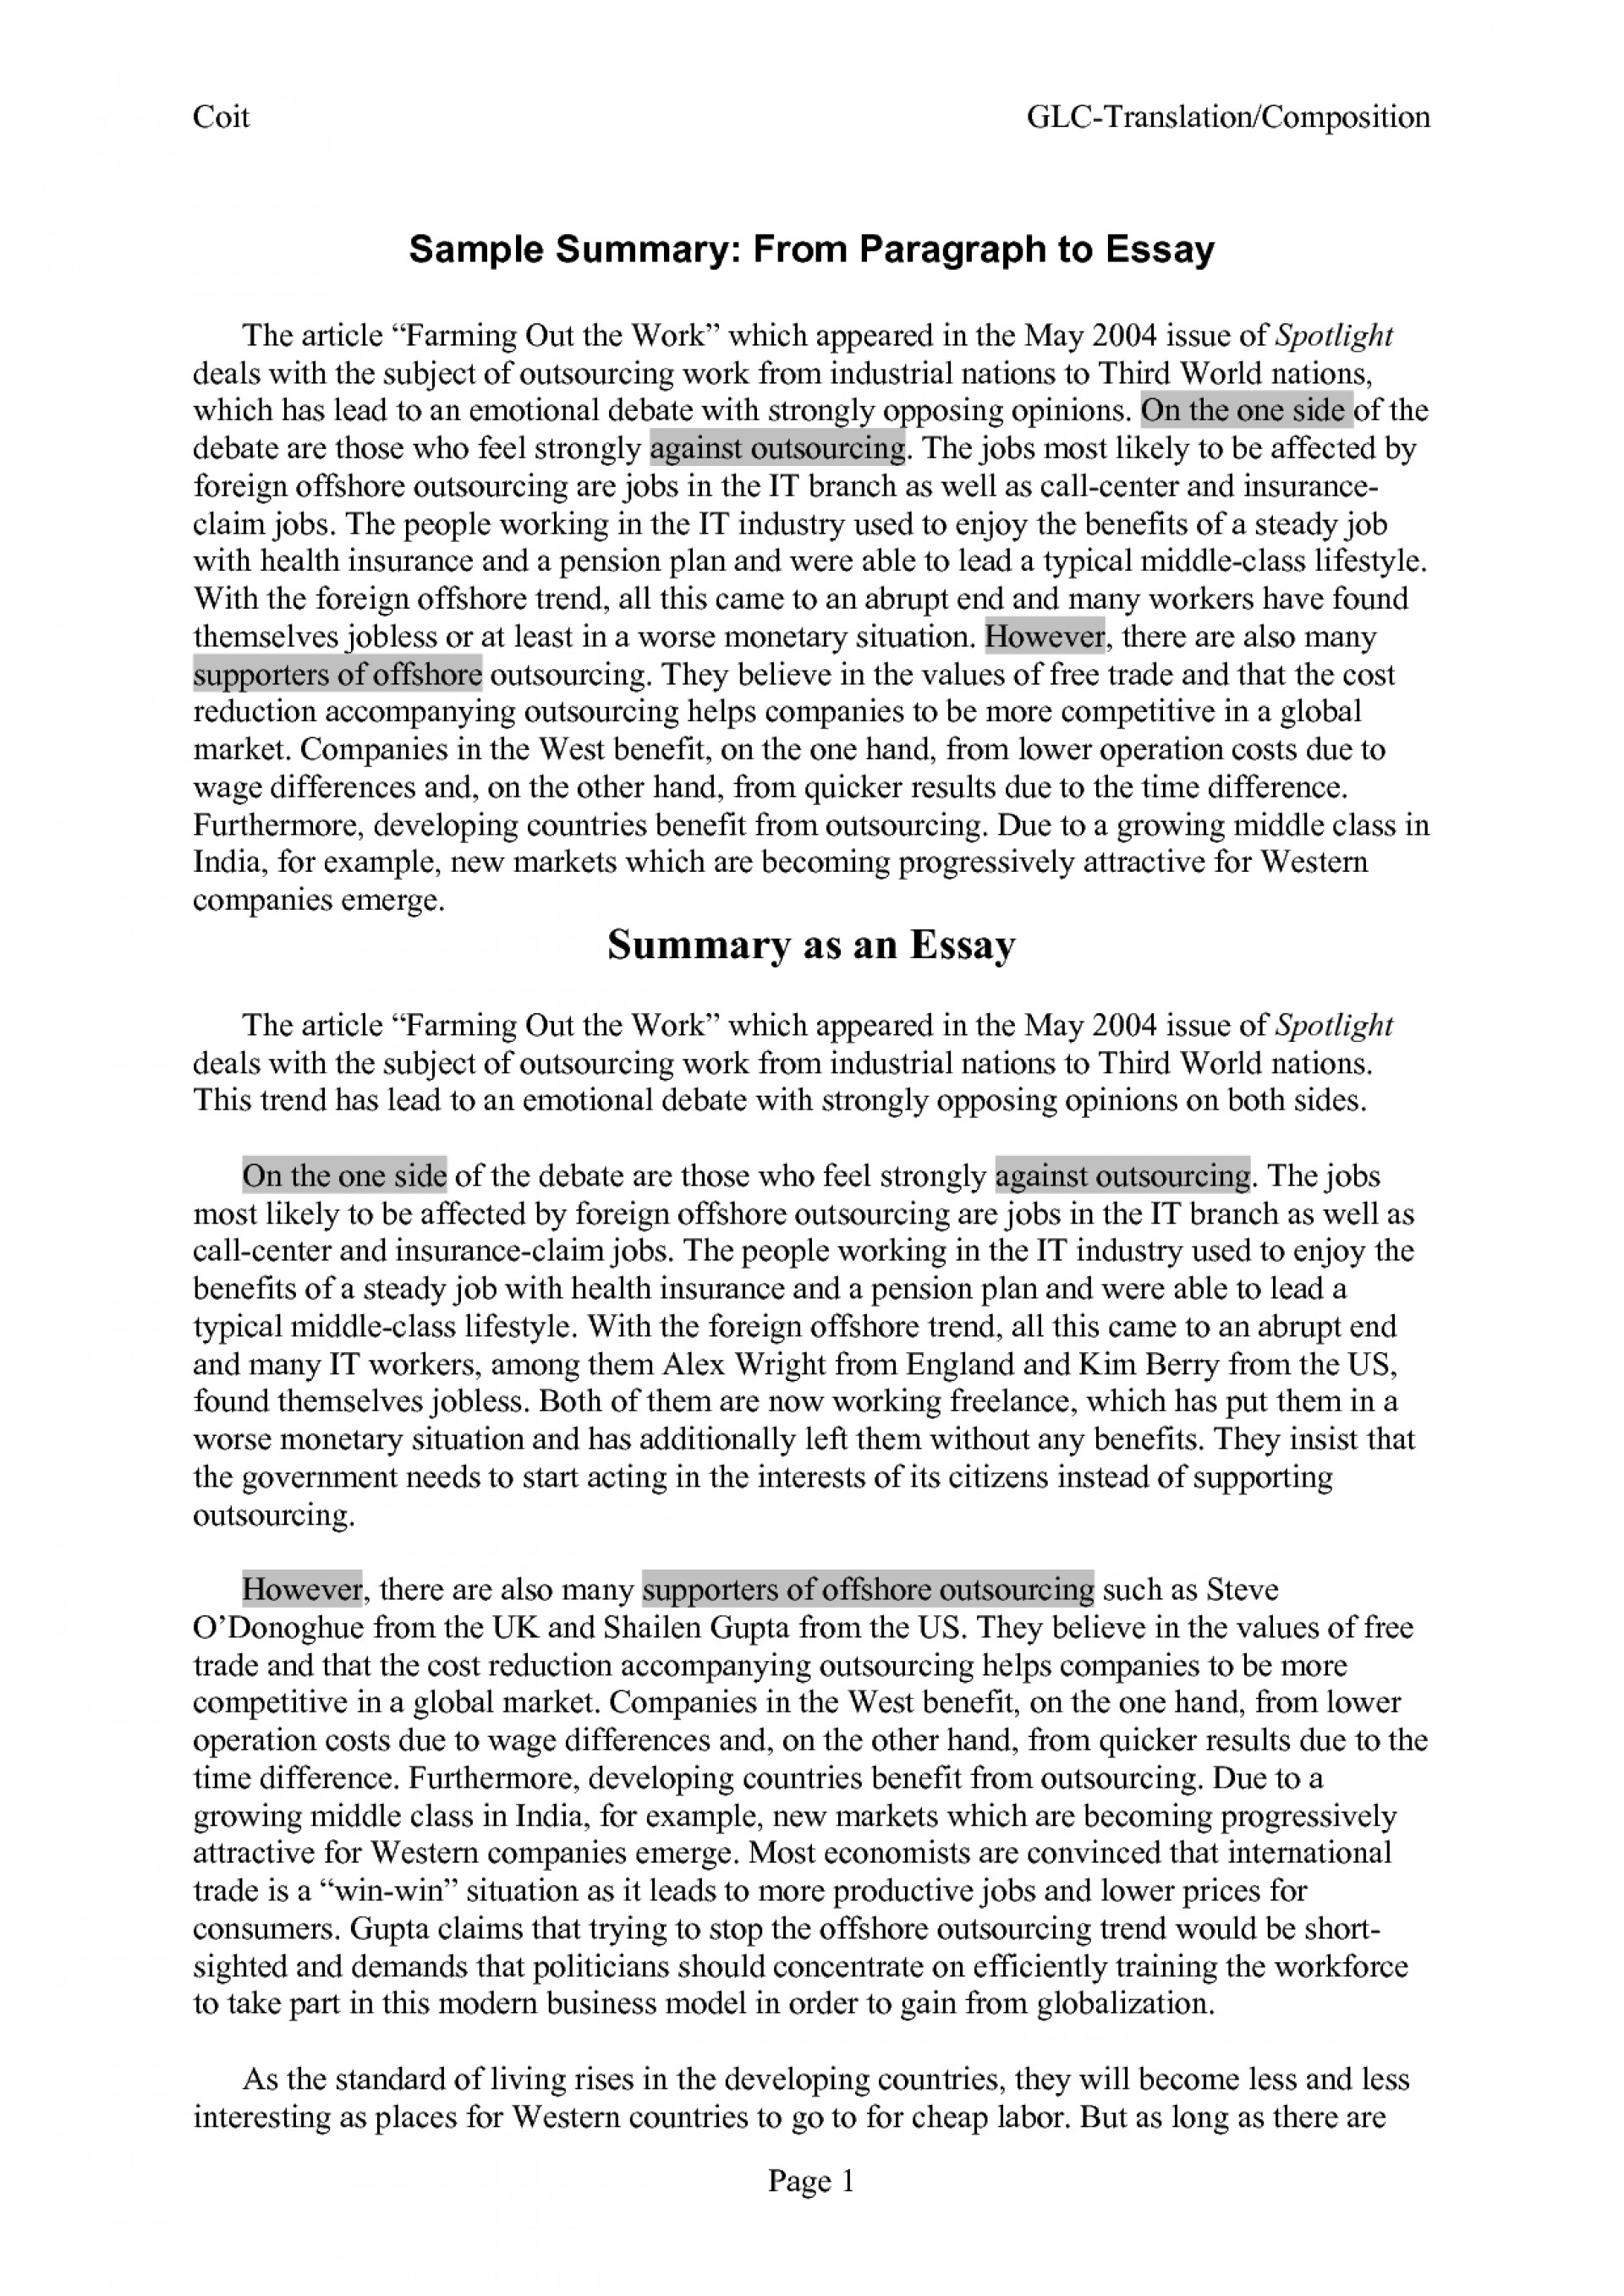 001 Sample Essay Summary Papers 248300 Astounding Executive Definition Paper Topics Response Format 1920